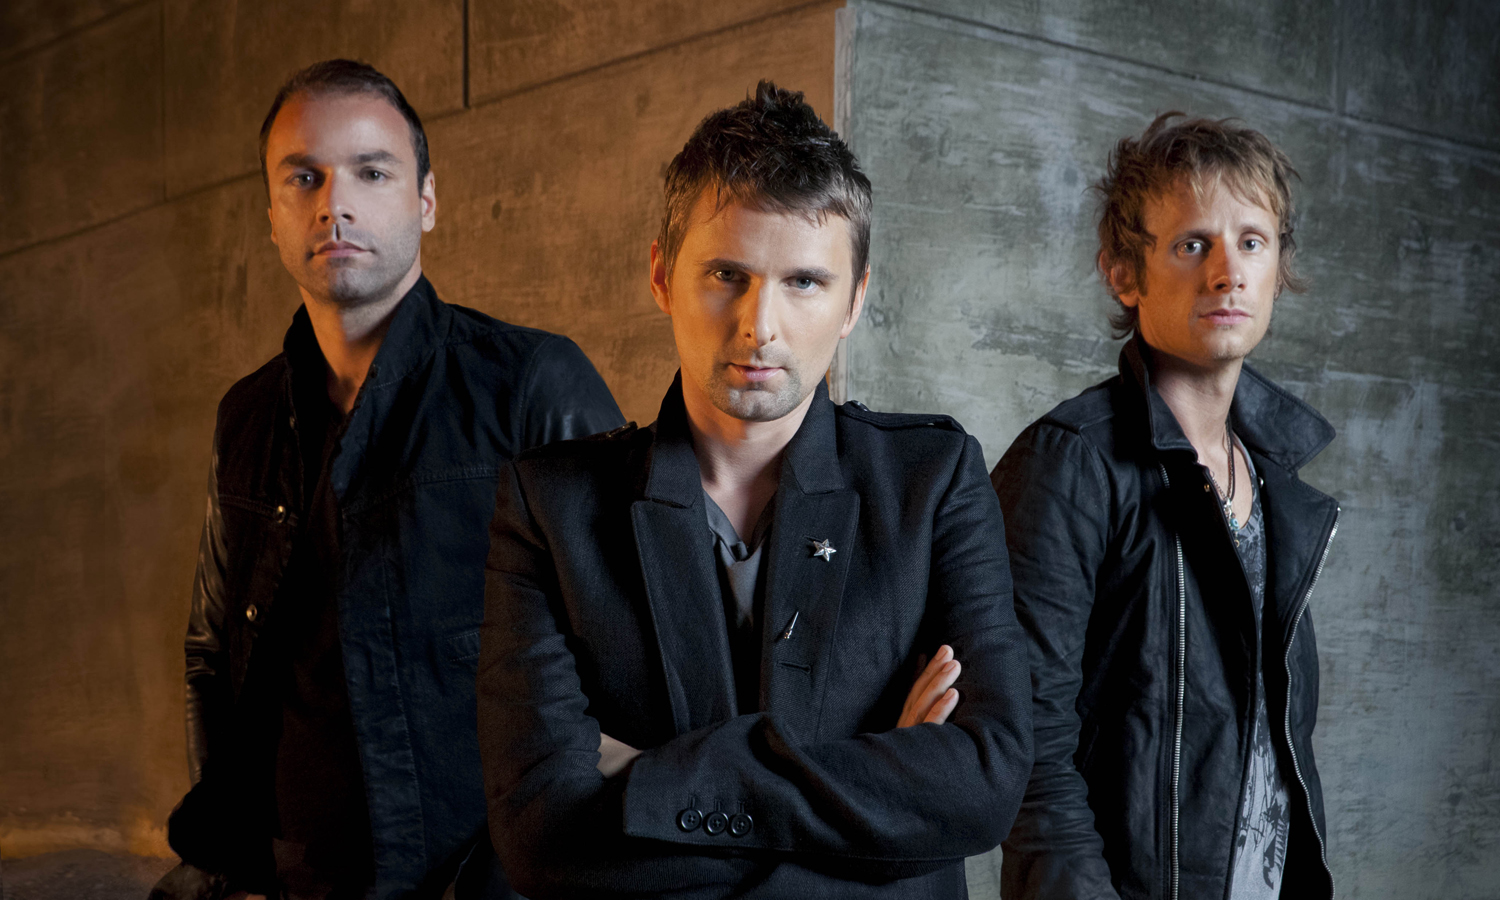 Muse returns to Singapore in September